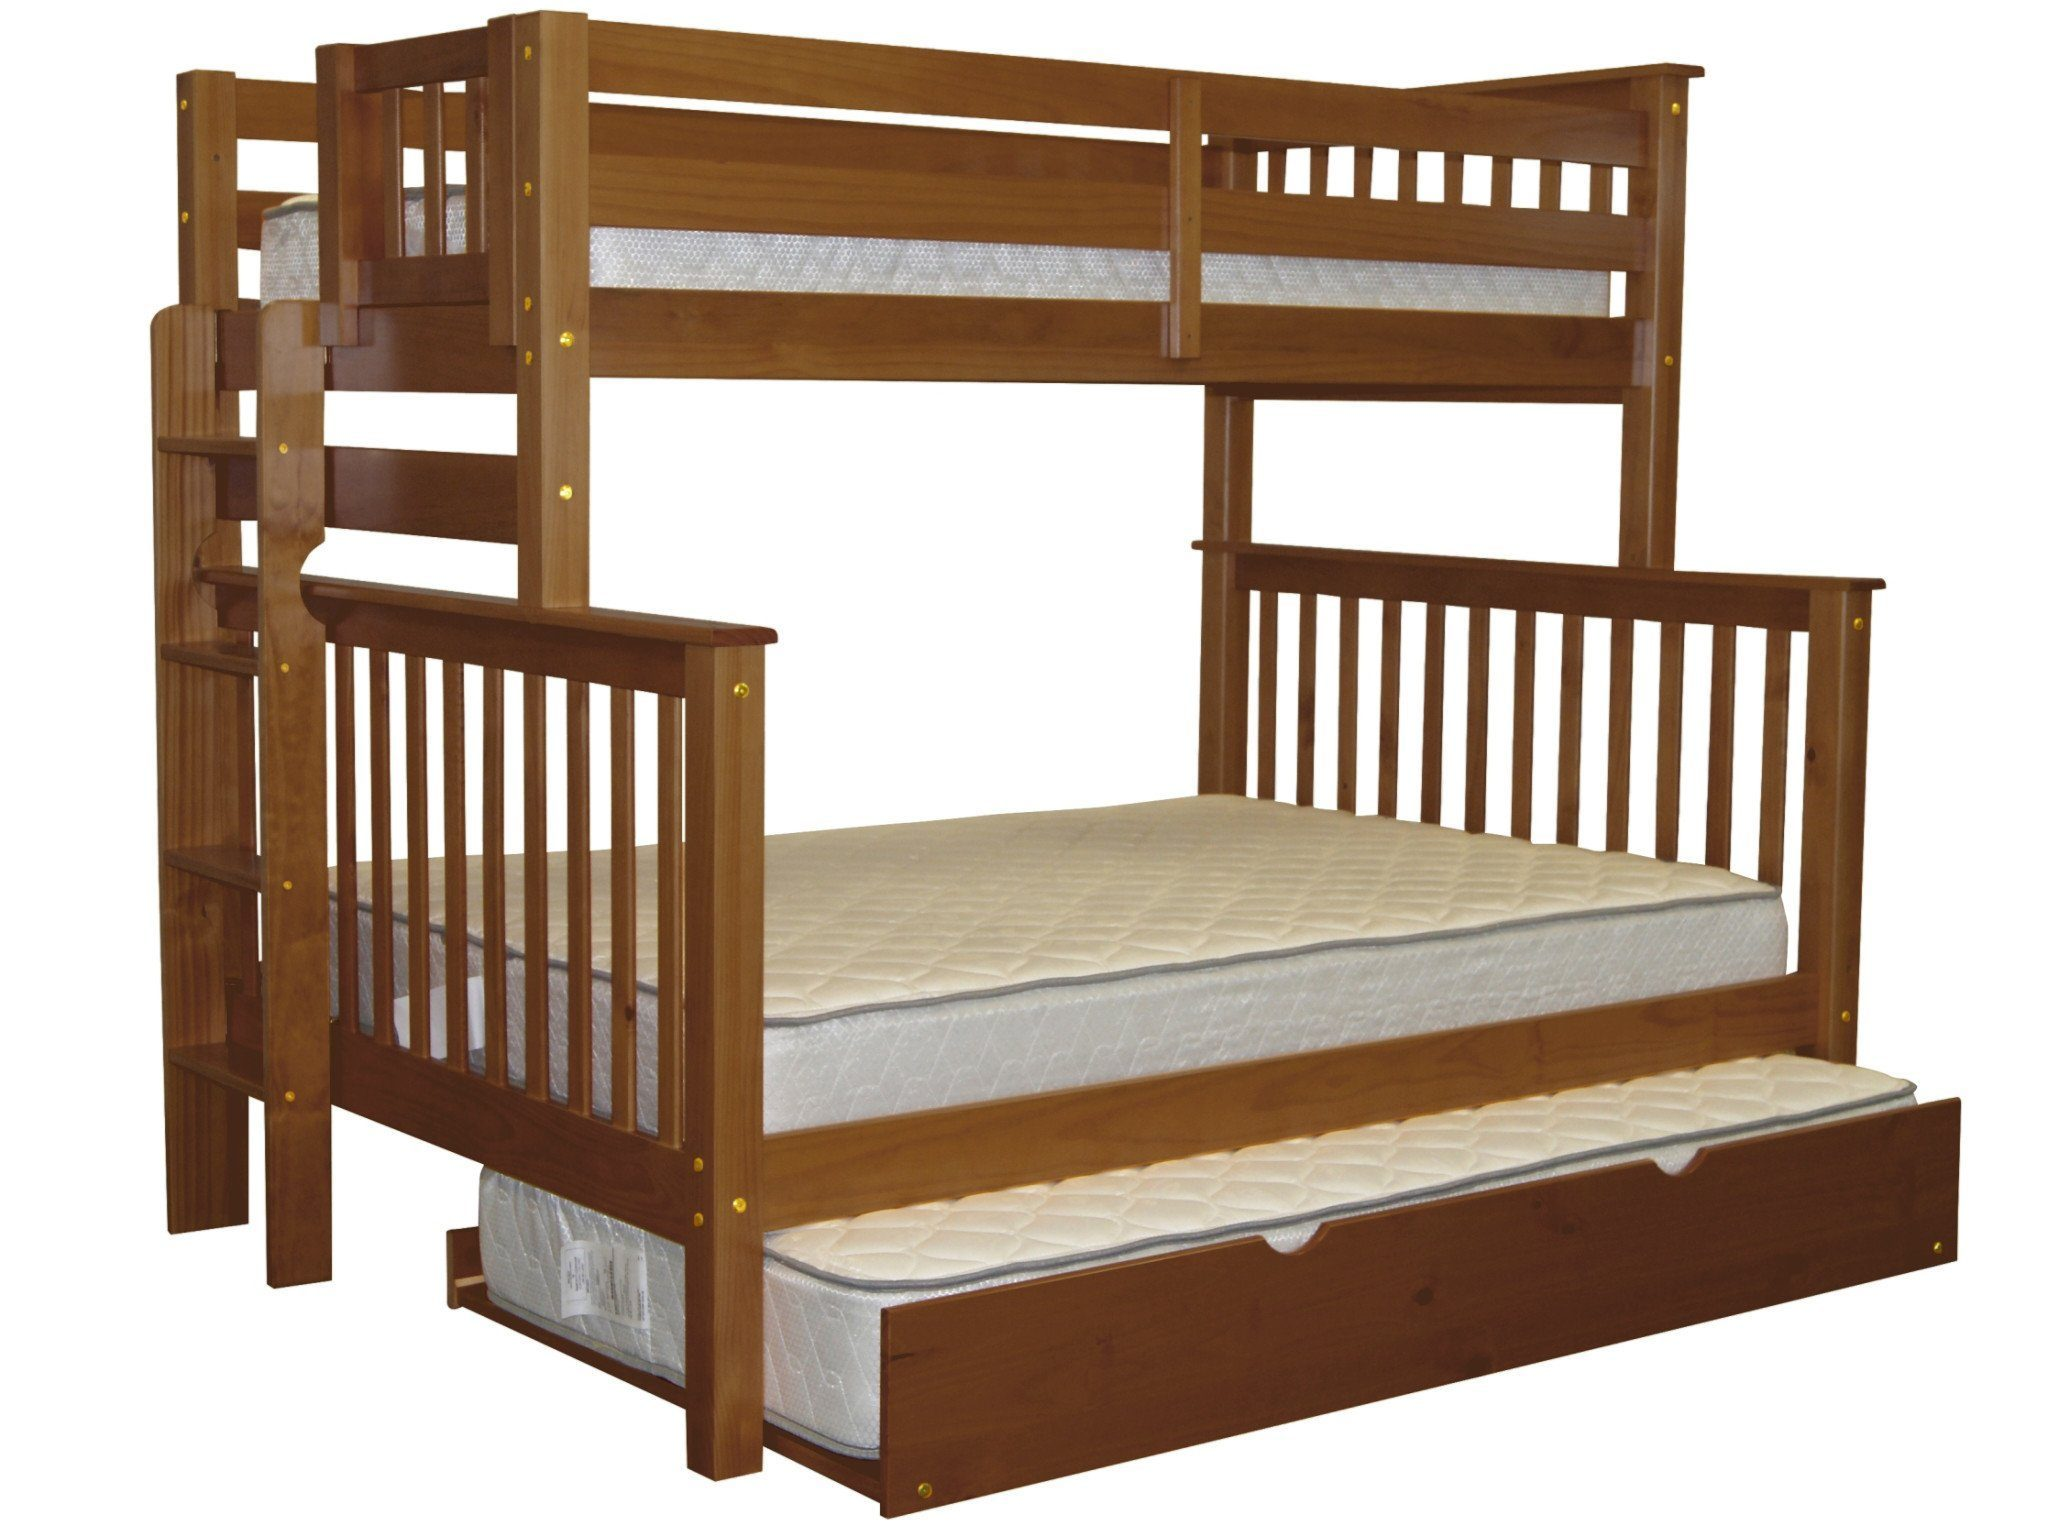 Bedz King Bunk Beds Twin over Full Mission Style with End Ladder and a Twin Trundle, Cappuccino by Bedz King